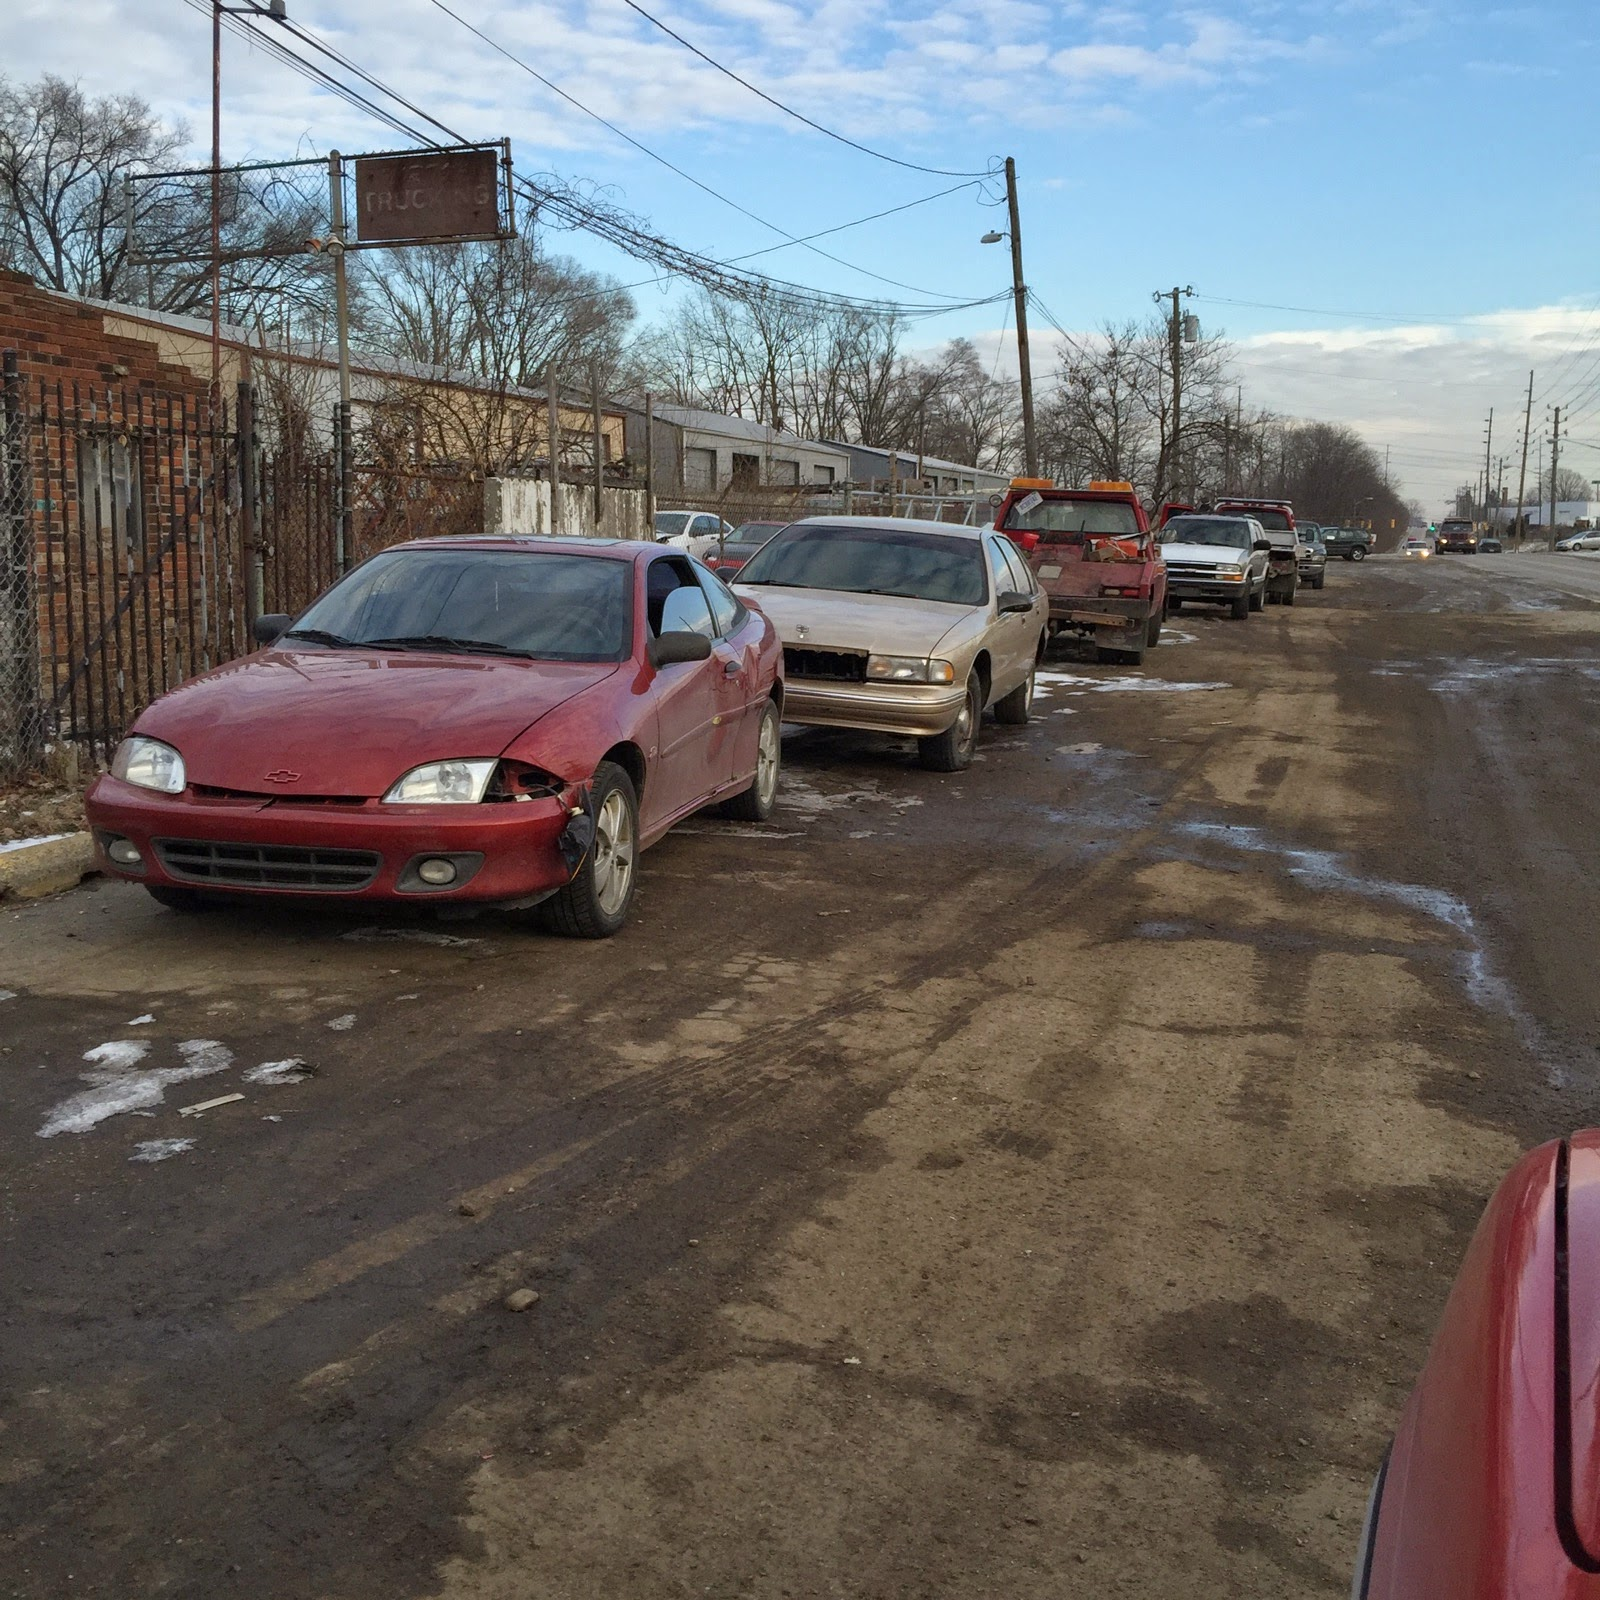 Salvage Yards Indianapolis: March 2015